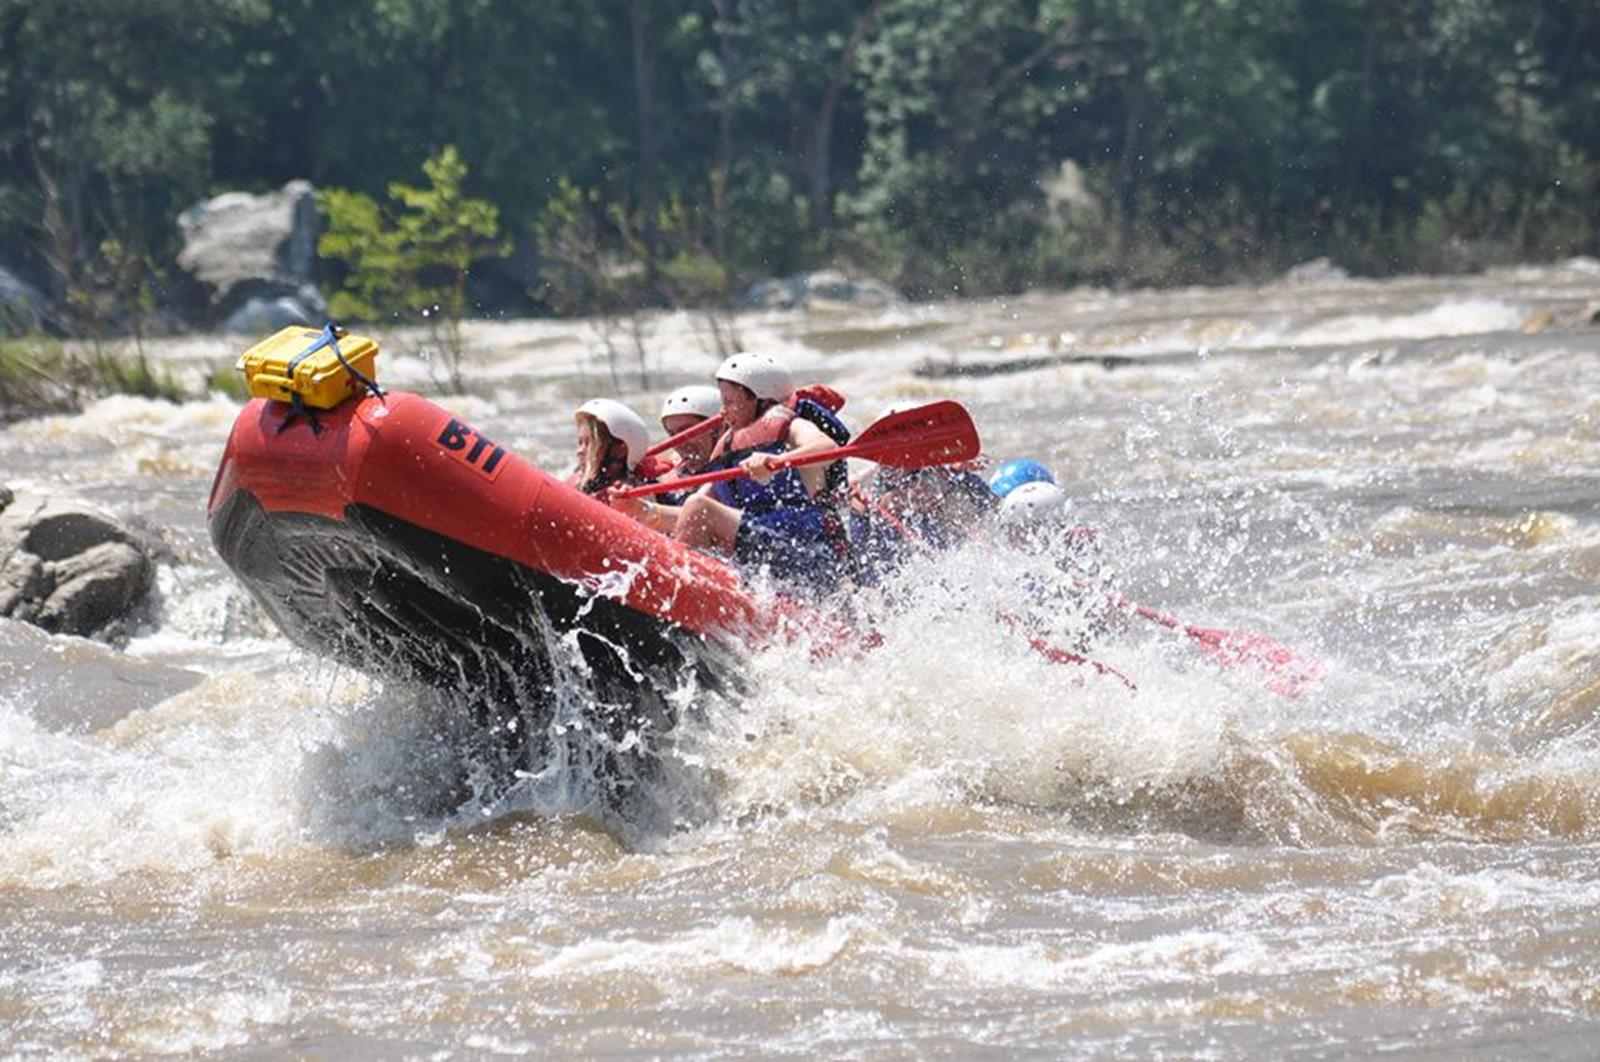 Whitewater rafting. Credit: Harpers Ferry Adventure Center